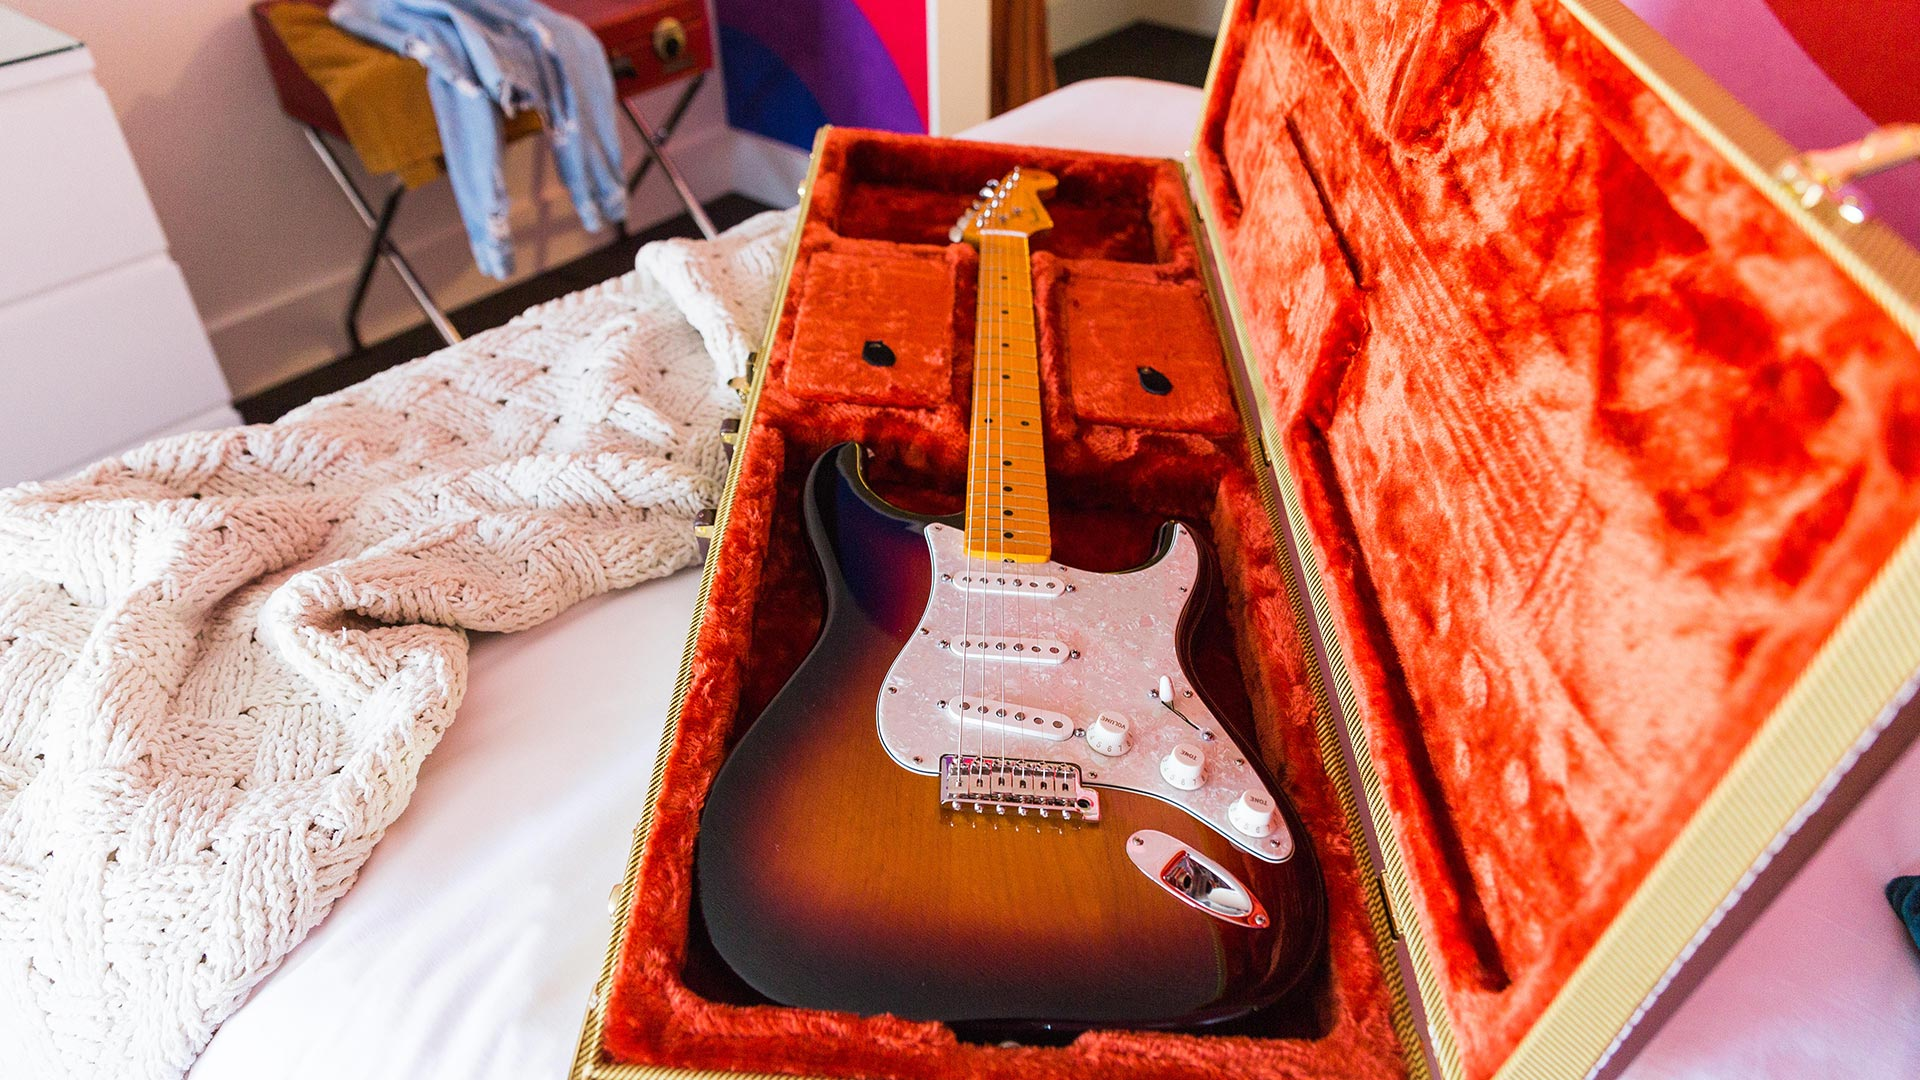 Rambler: brown electric guitar in its case on the bed